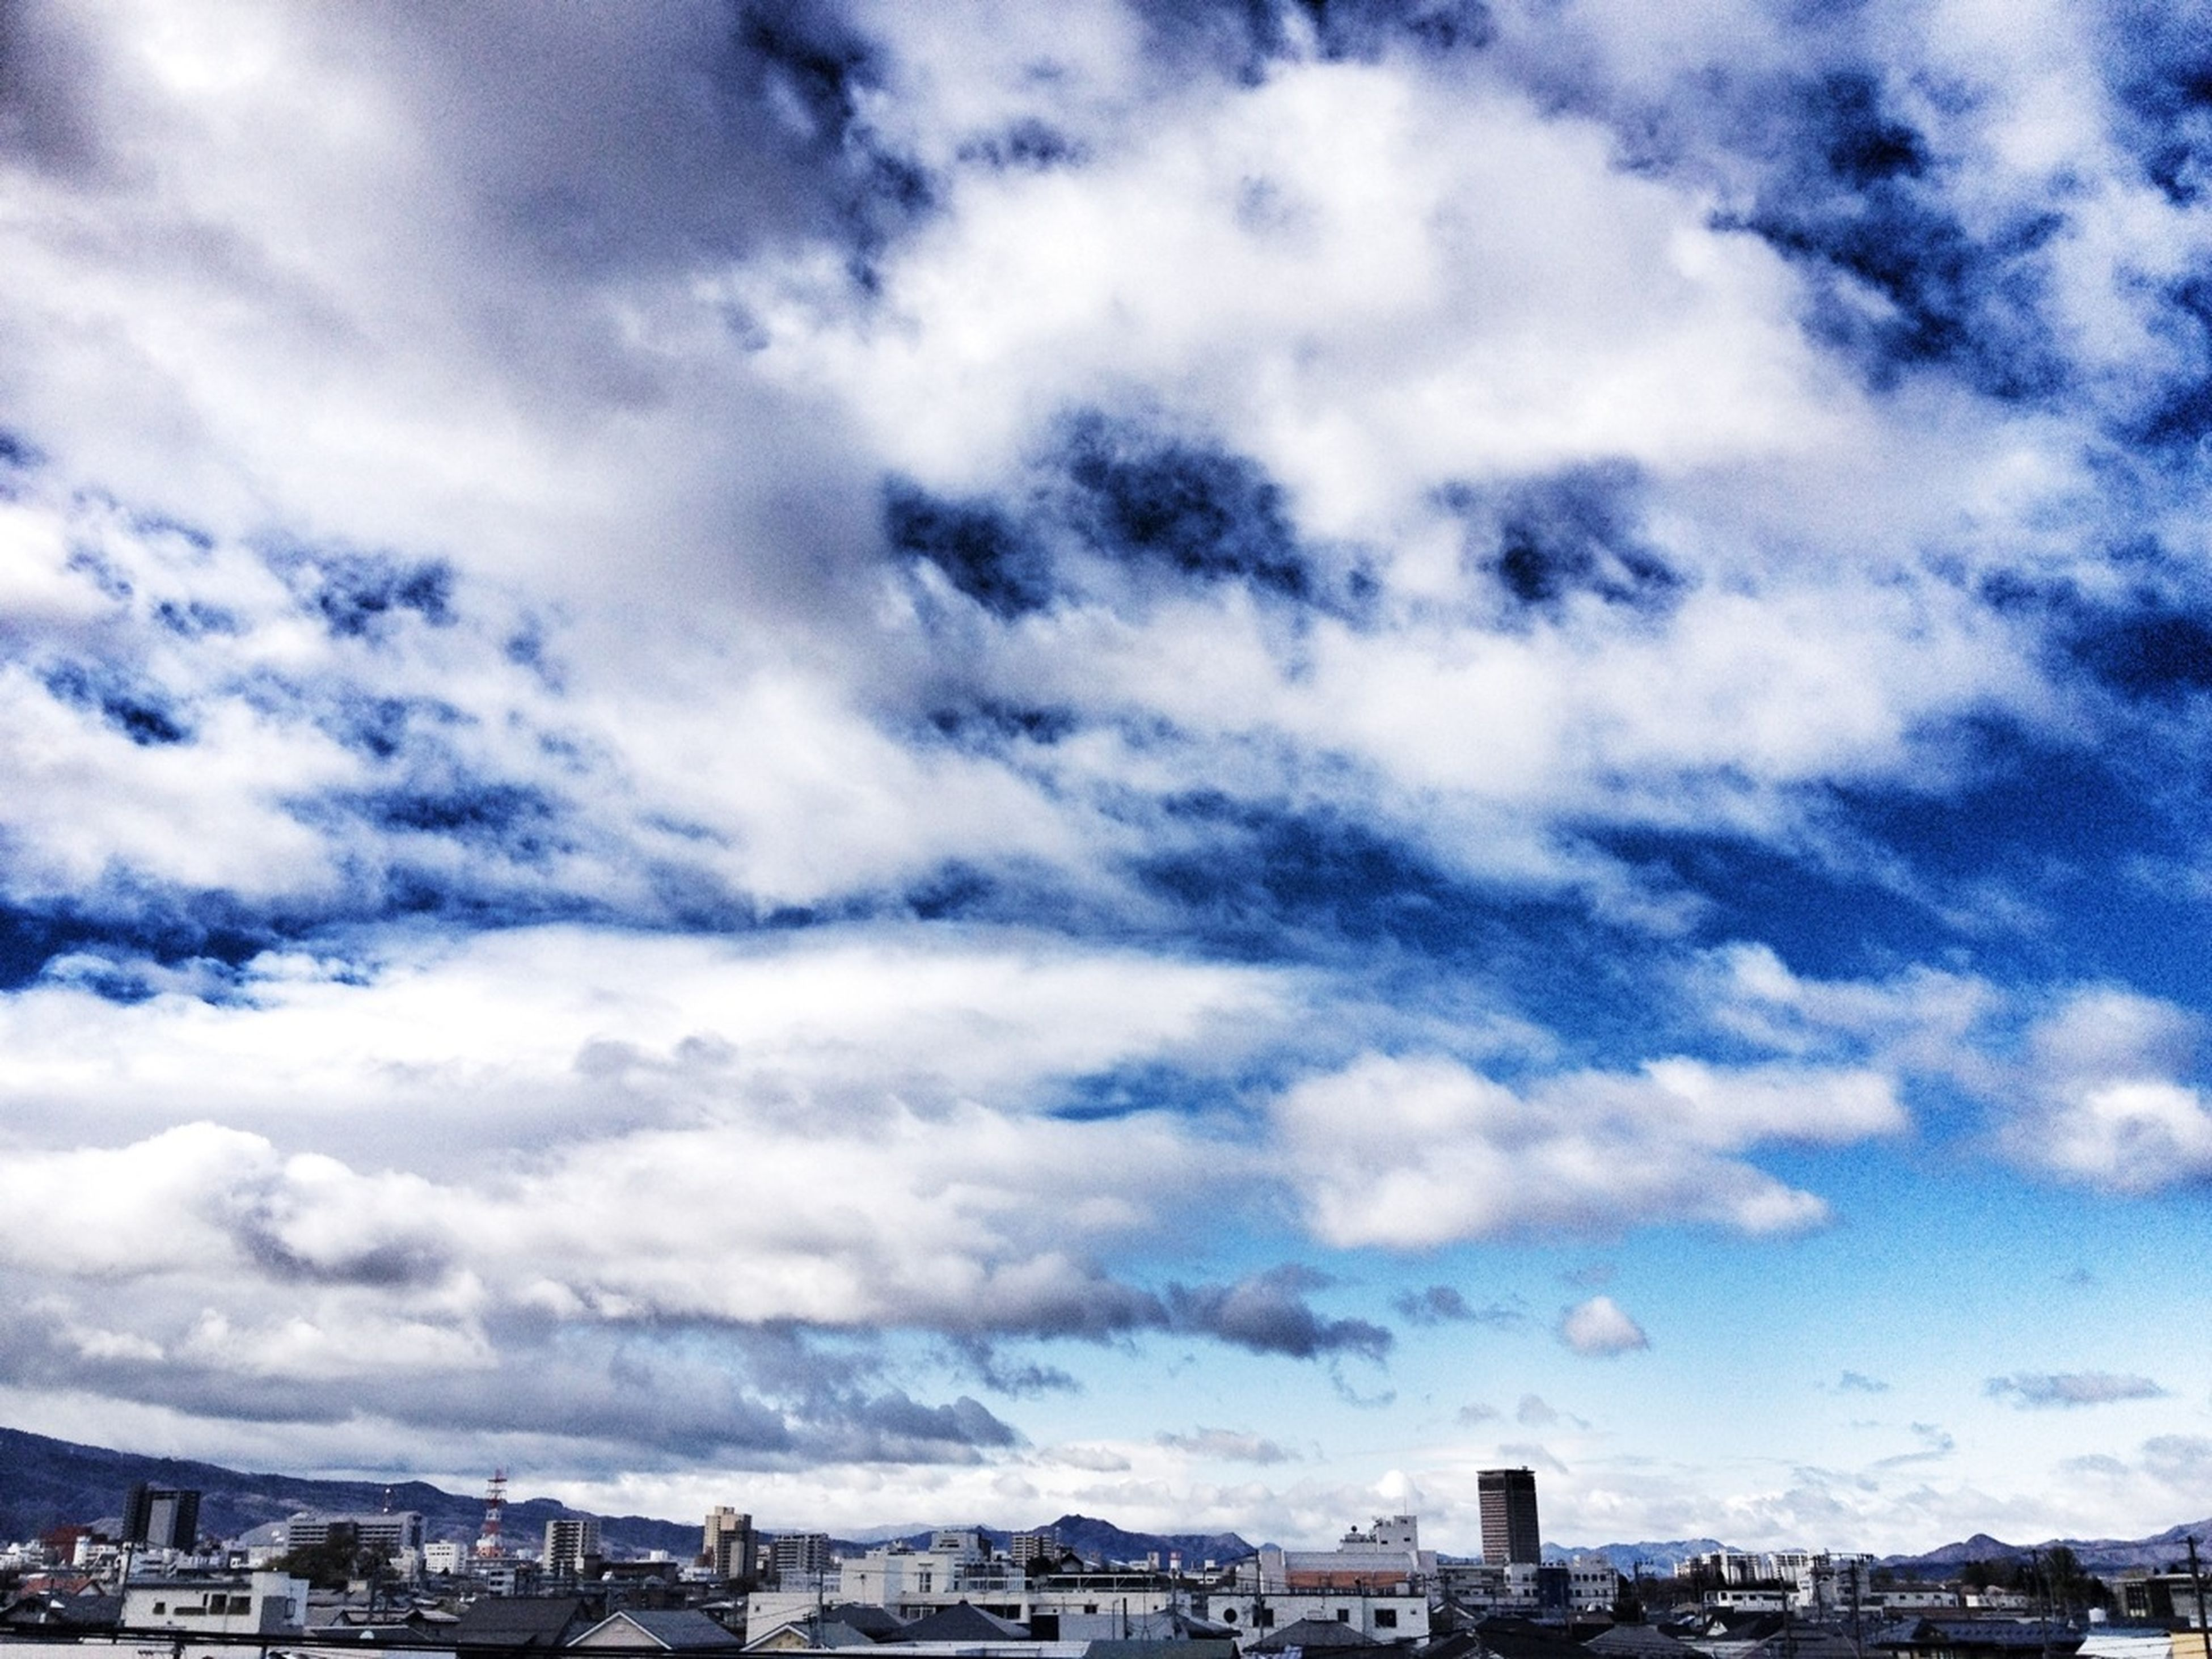 building exterior, architecture, built structure, city, cityscape, sky, cloud - sky, crowded, cloudy, residential district, cloud, residential building, blue, city life, weather, residential structure, day, high angle view, outdoors, no people